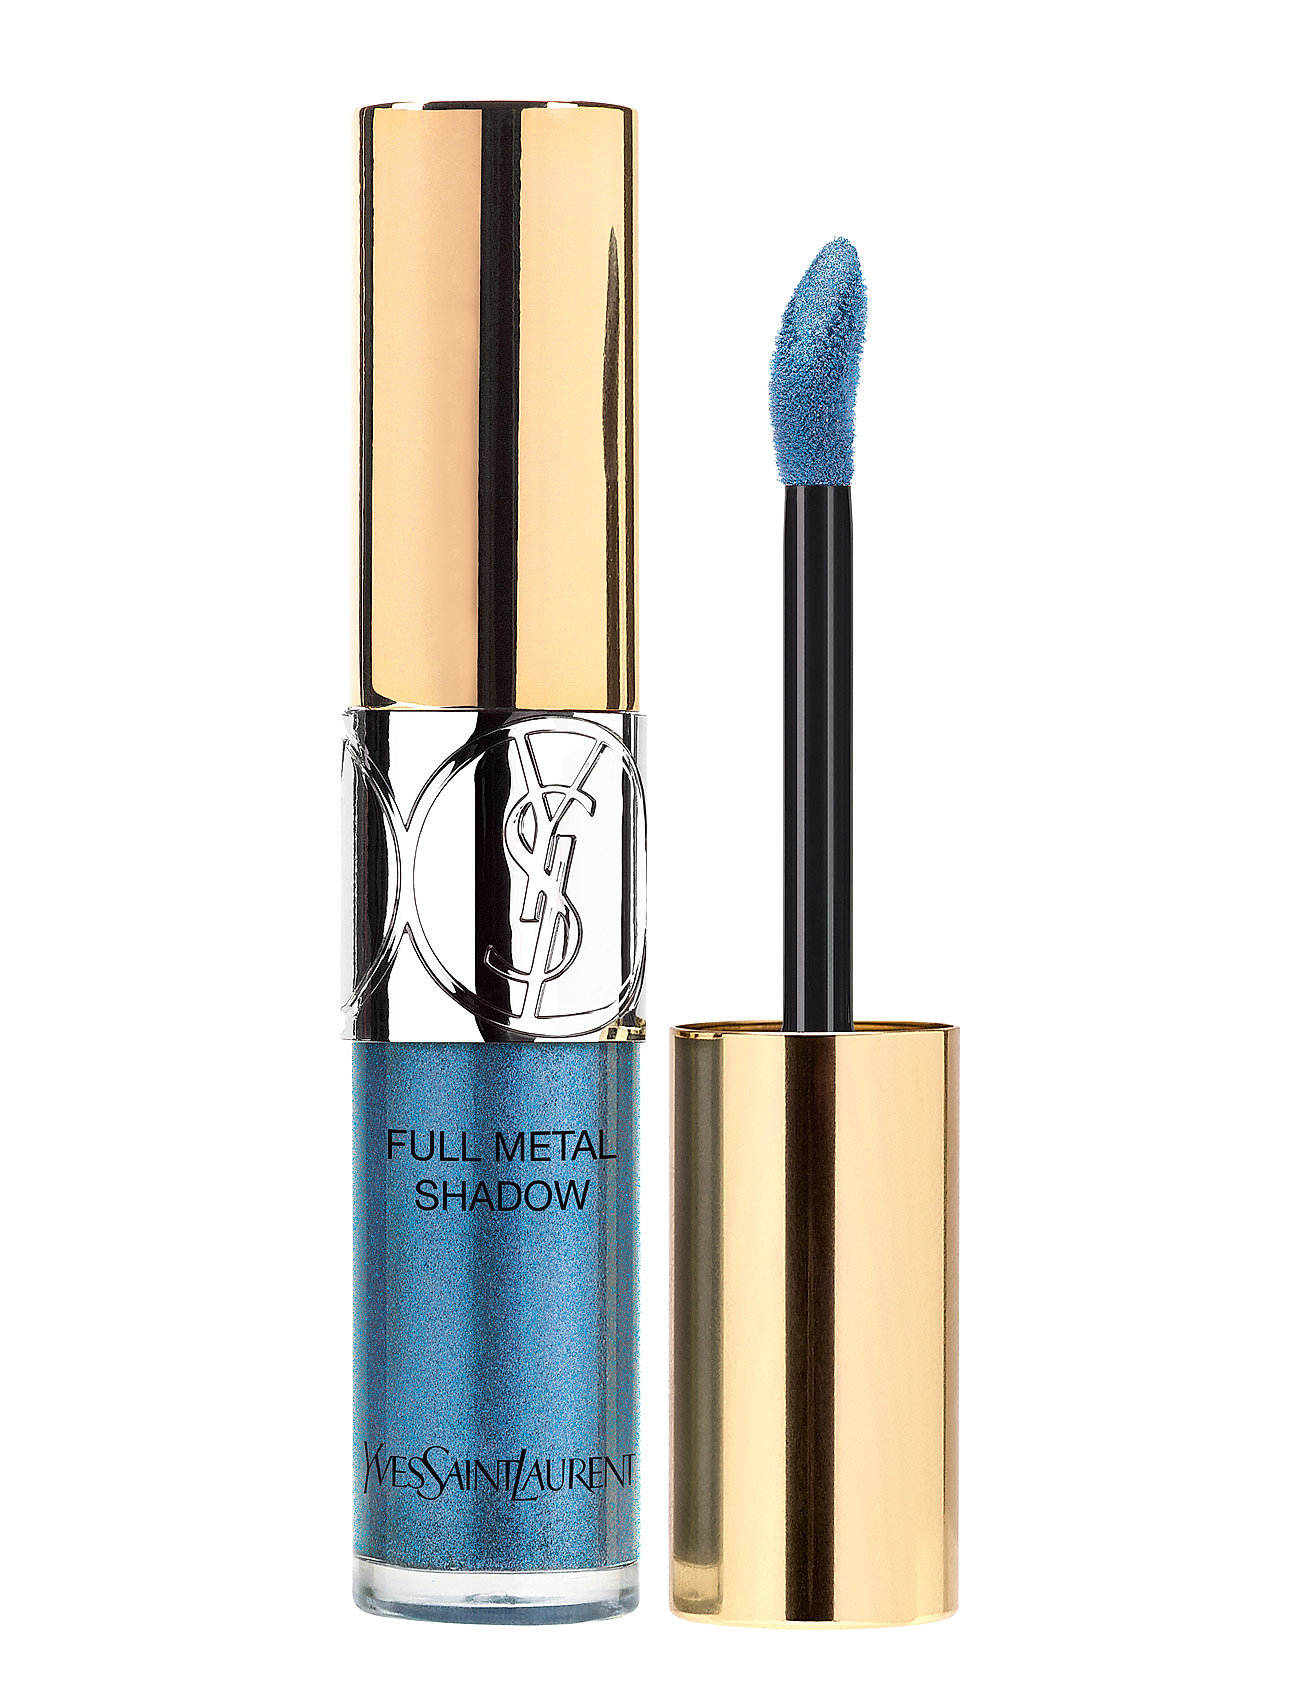 Yves Saint Laurent Full Metal Shadow 20